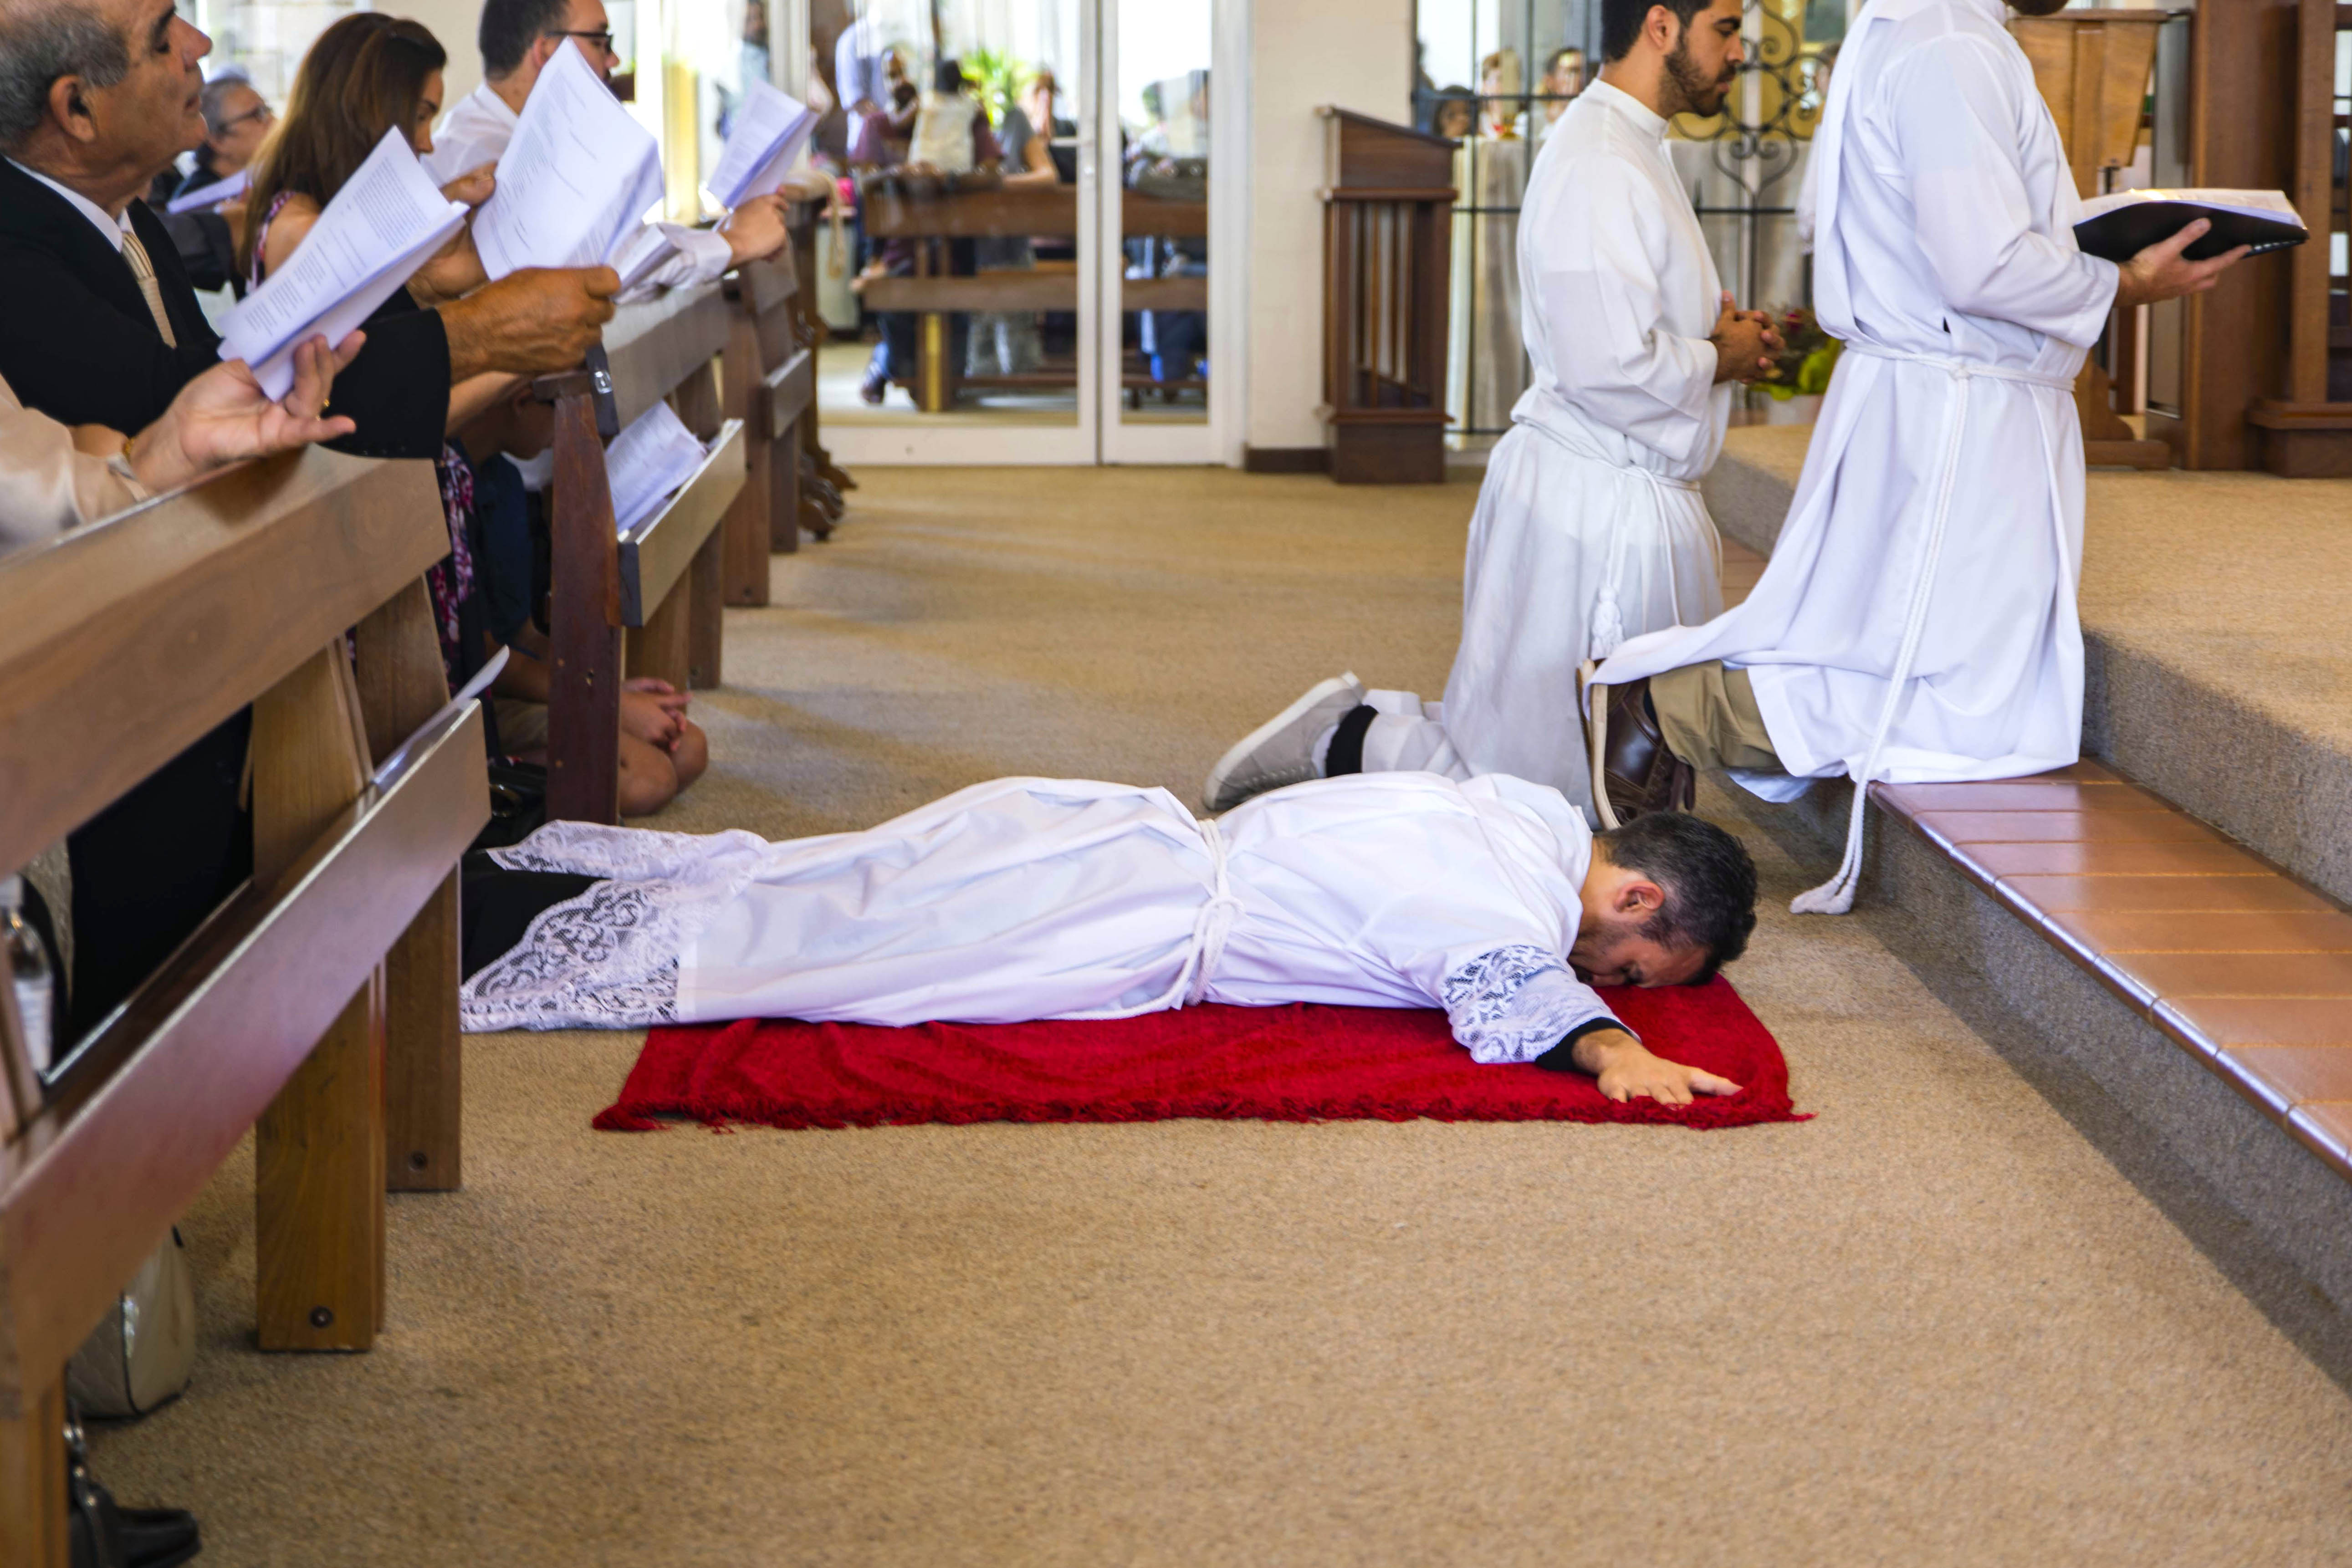 Br Chris de Sousa prostrates before the altar during his Ordination to the Diaconate on 3 November 2018 at St Jerome's Church, Spearwood. Photo: Matthew Lau.